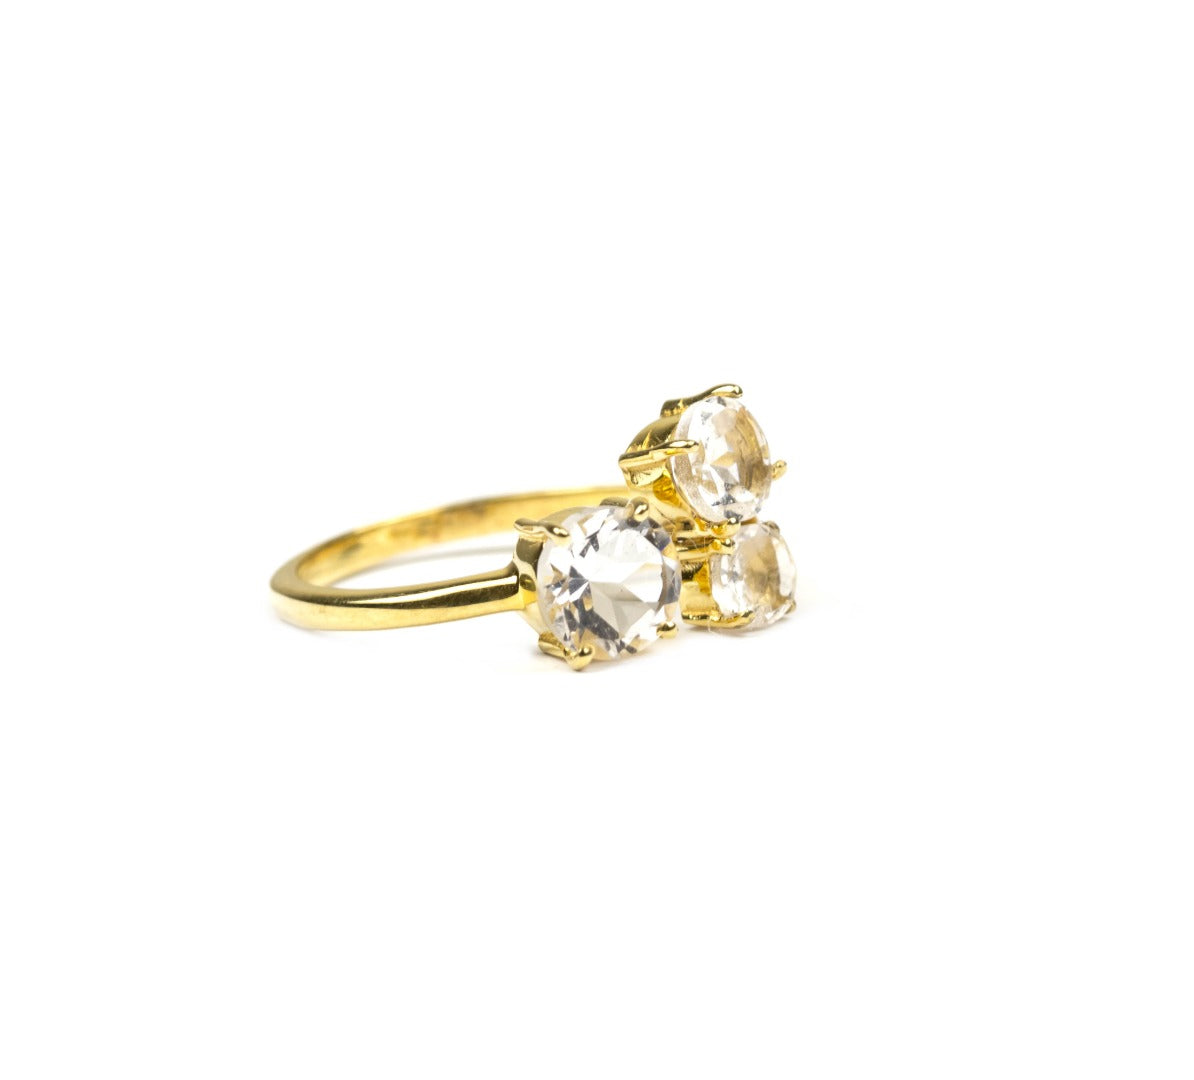 Azeztulite Satyaloka Quartz 9 Carat Gold Faceted Ring  Size N (481096)